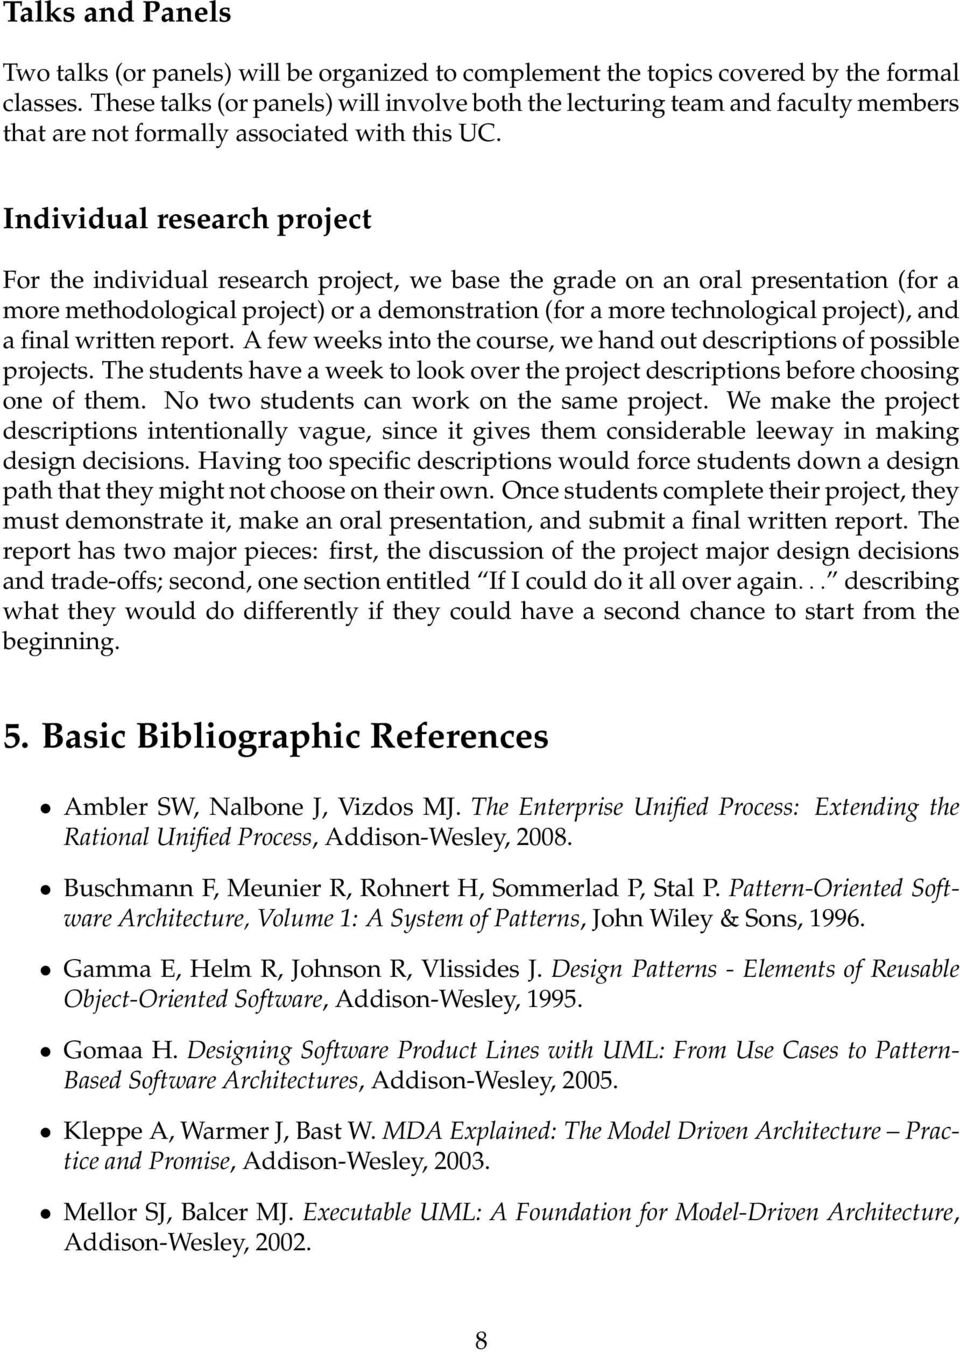 Individual research project For the individual research project, we base the grade on an oral presentation (for a more methodological project) or a demonstration (for a more technological project),